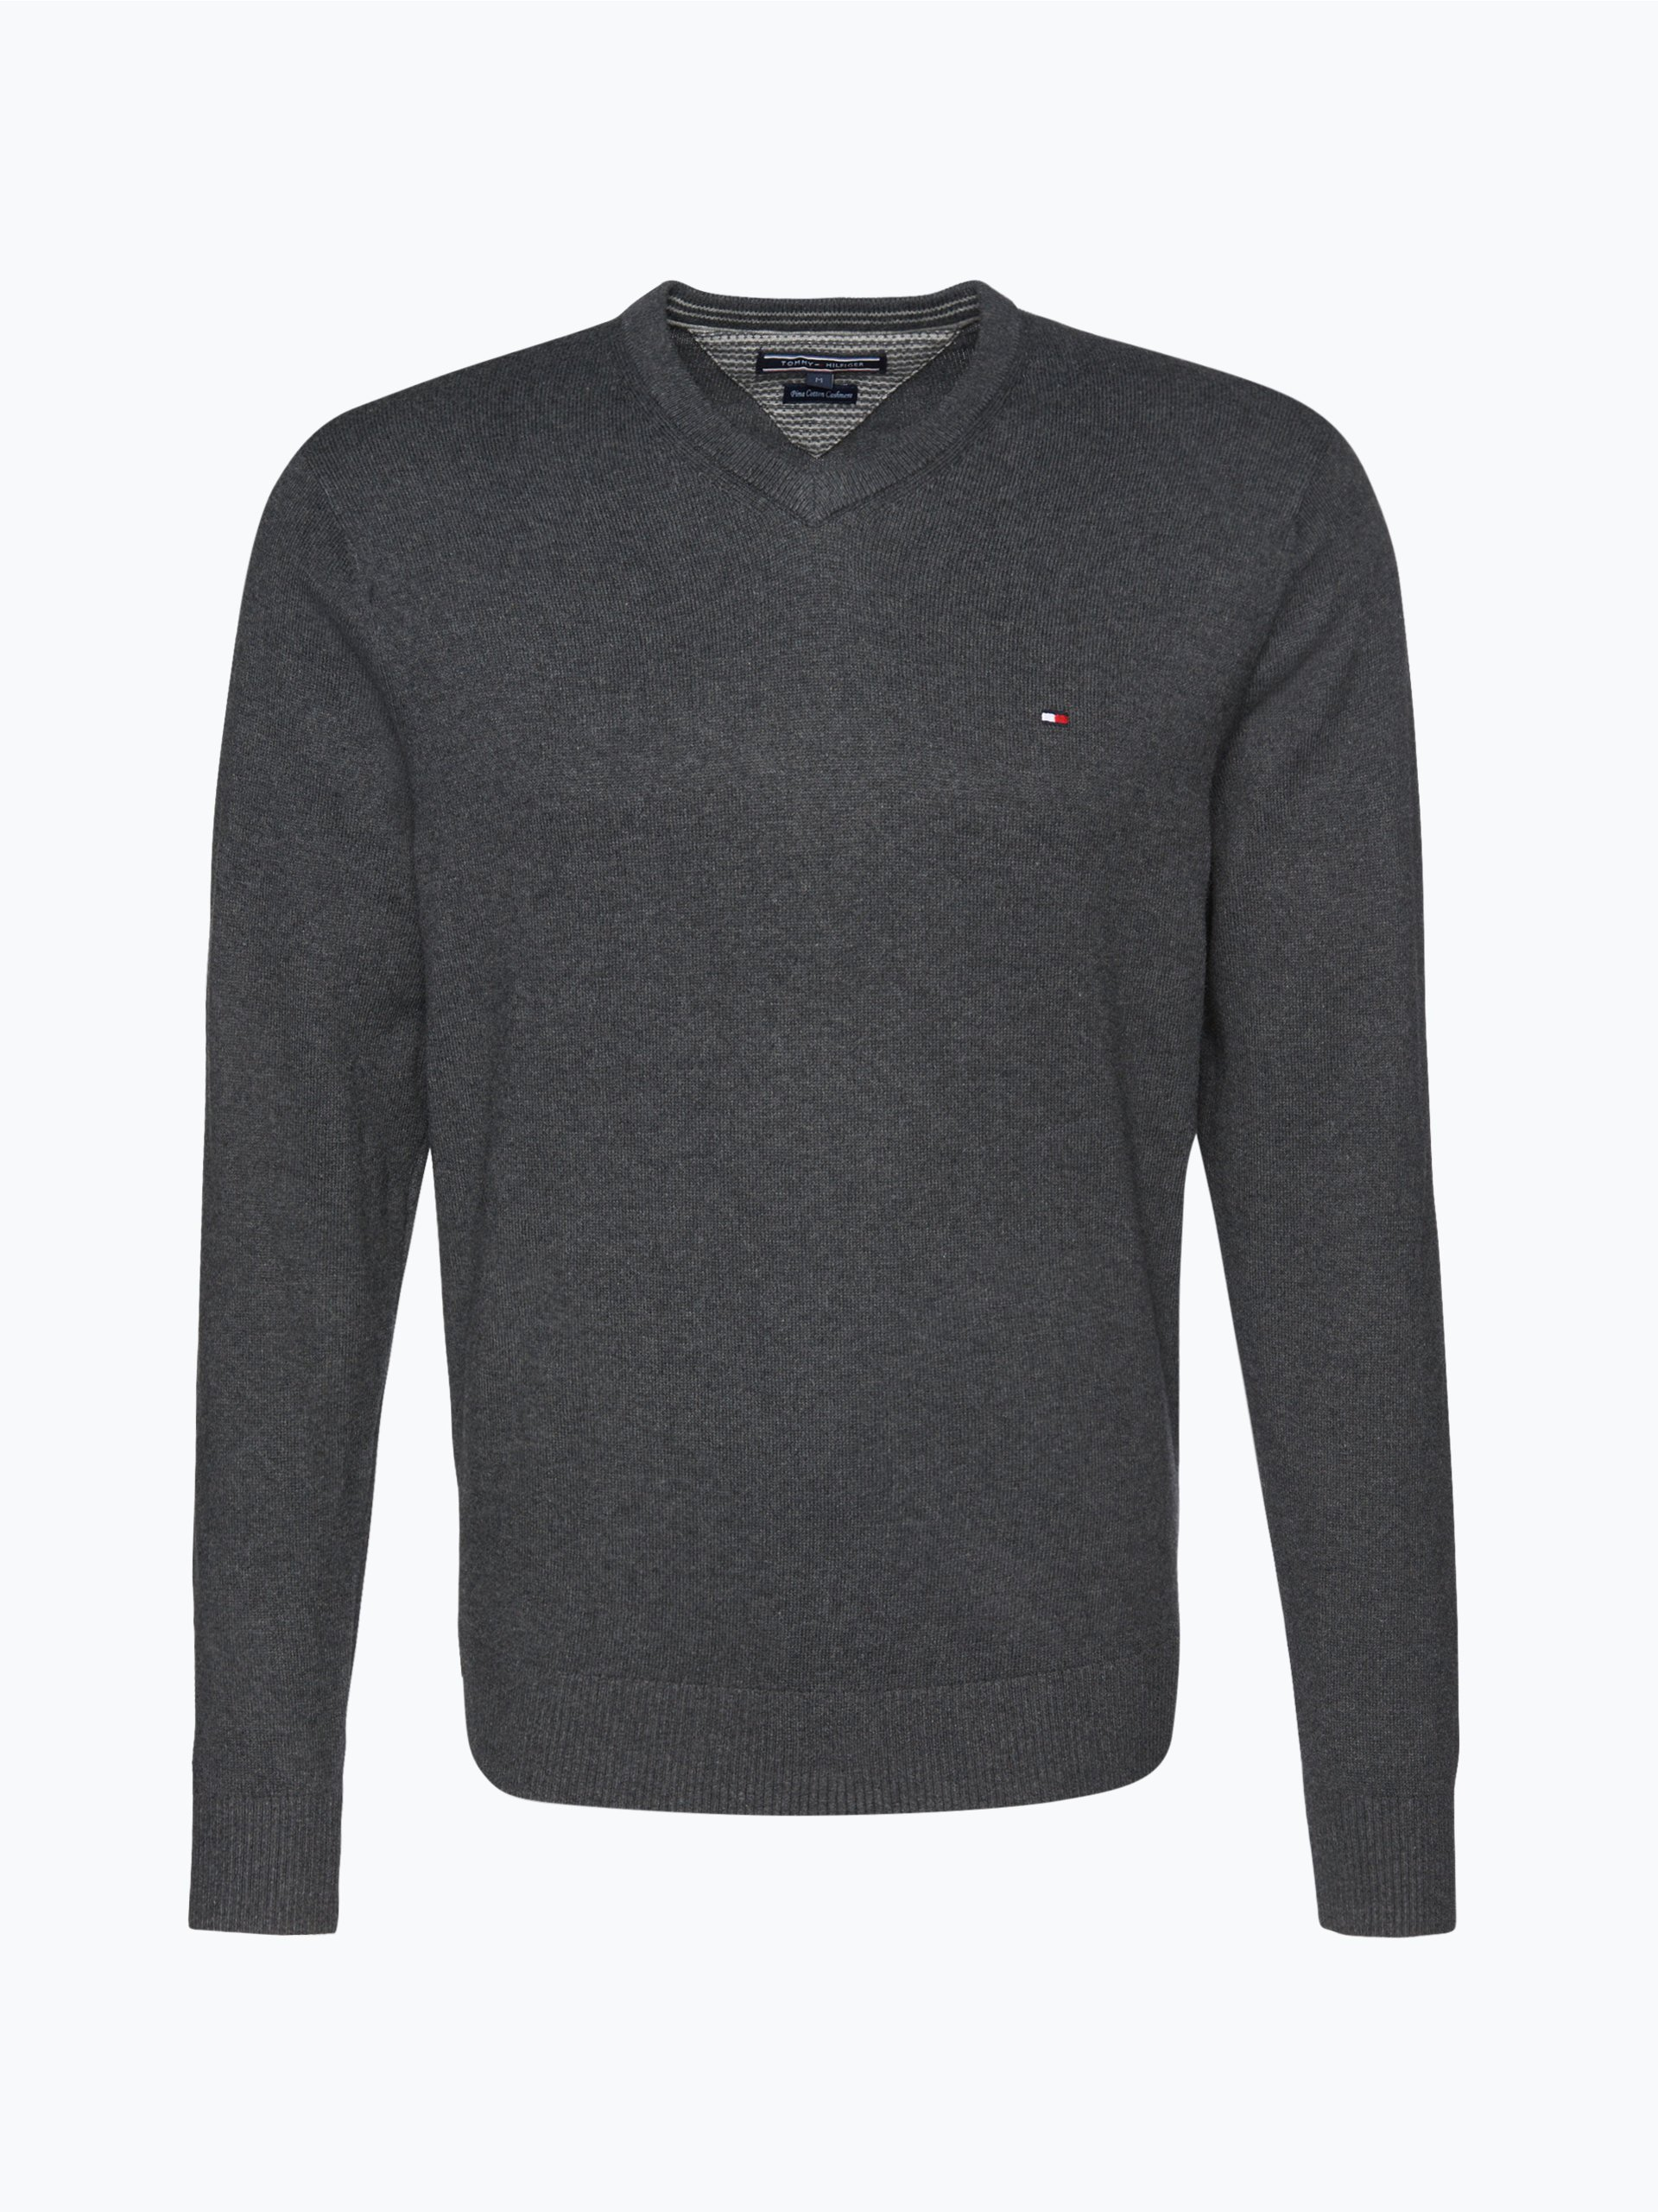 tommy hilfiger herren pullover mit cashmere anteil. Black Bedroom Furniture Sets. Home Design Ideas